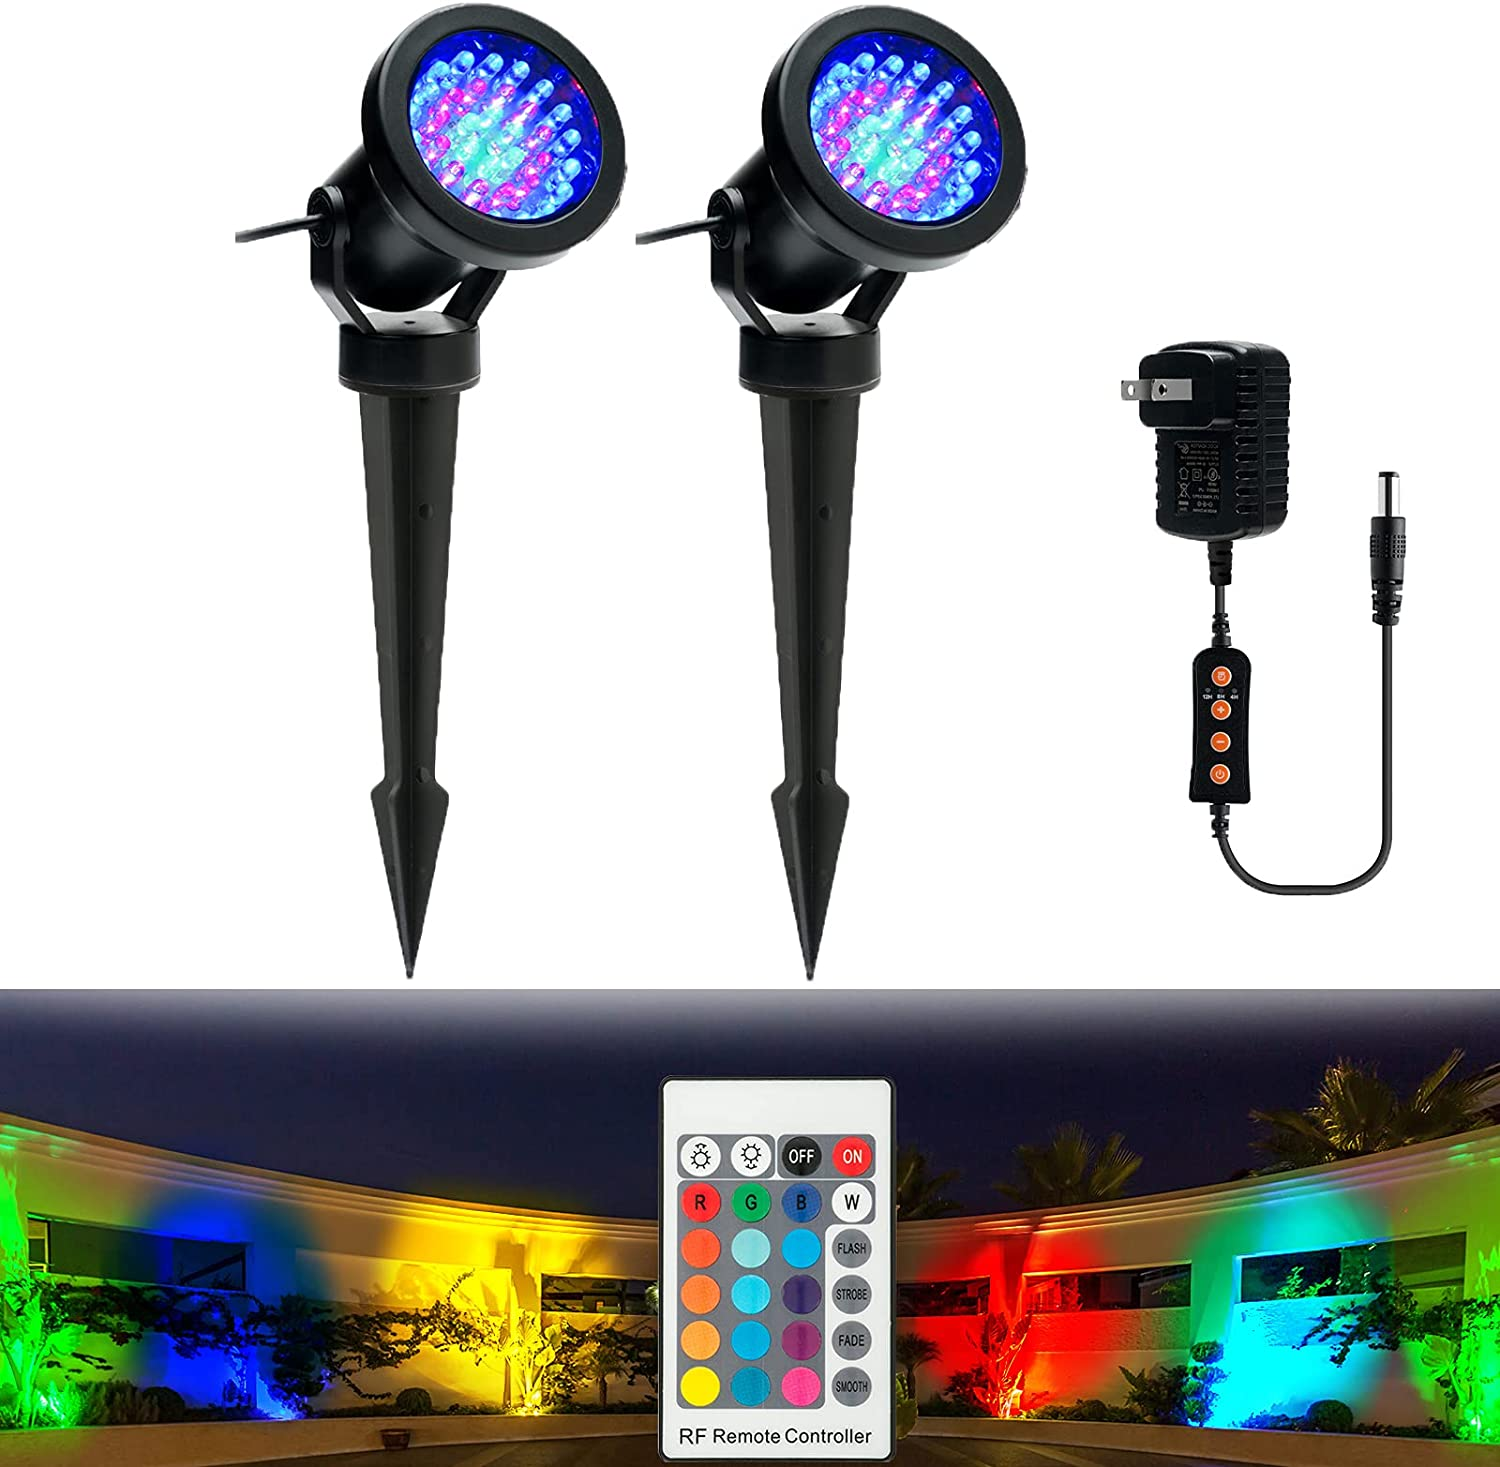 Outdoor Landscape Spotlights, Color Changing Dimmable with Timer IP66 Waterproof LED Landscape Lights, Outdoor Spotlights with Spike Stand for Garden Yard Lawn Pathway Flag Trees Uplights, 2 in Set